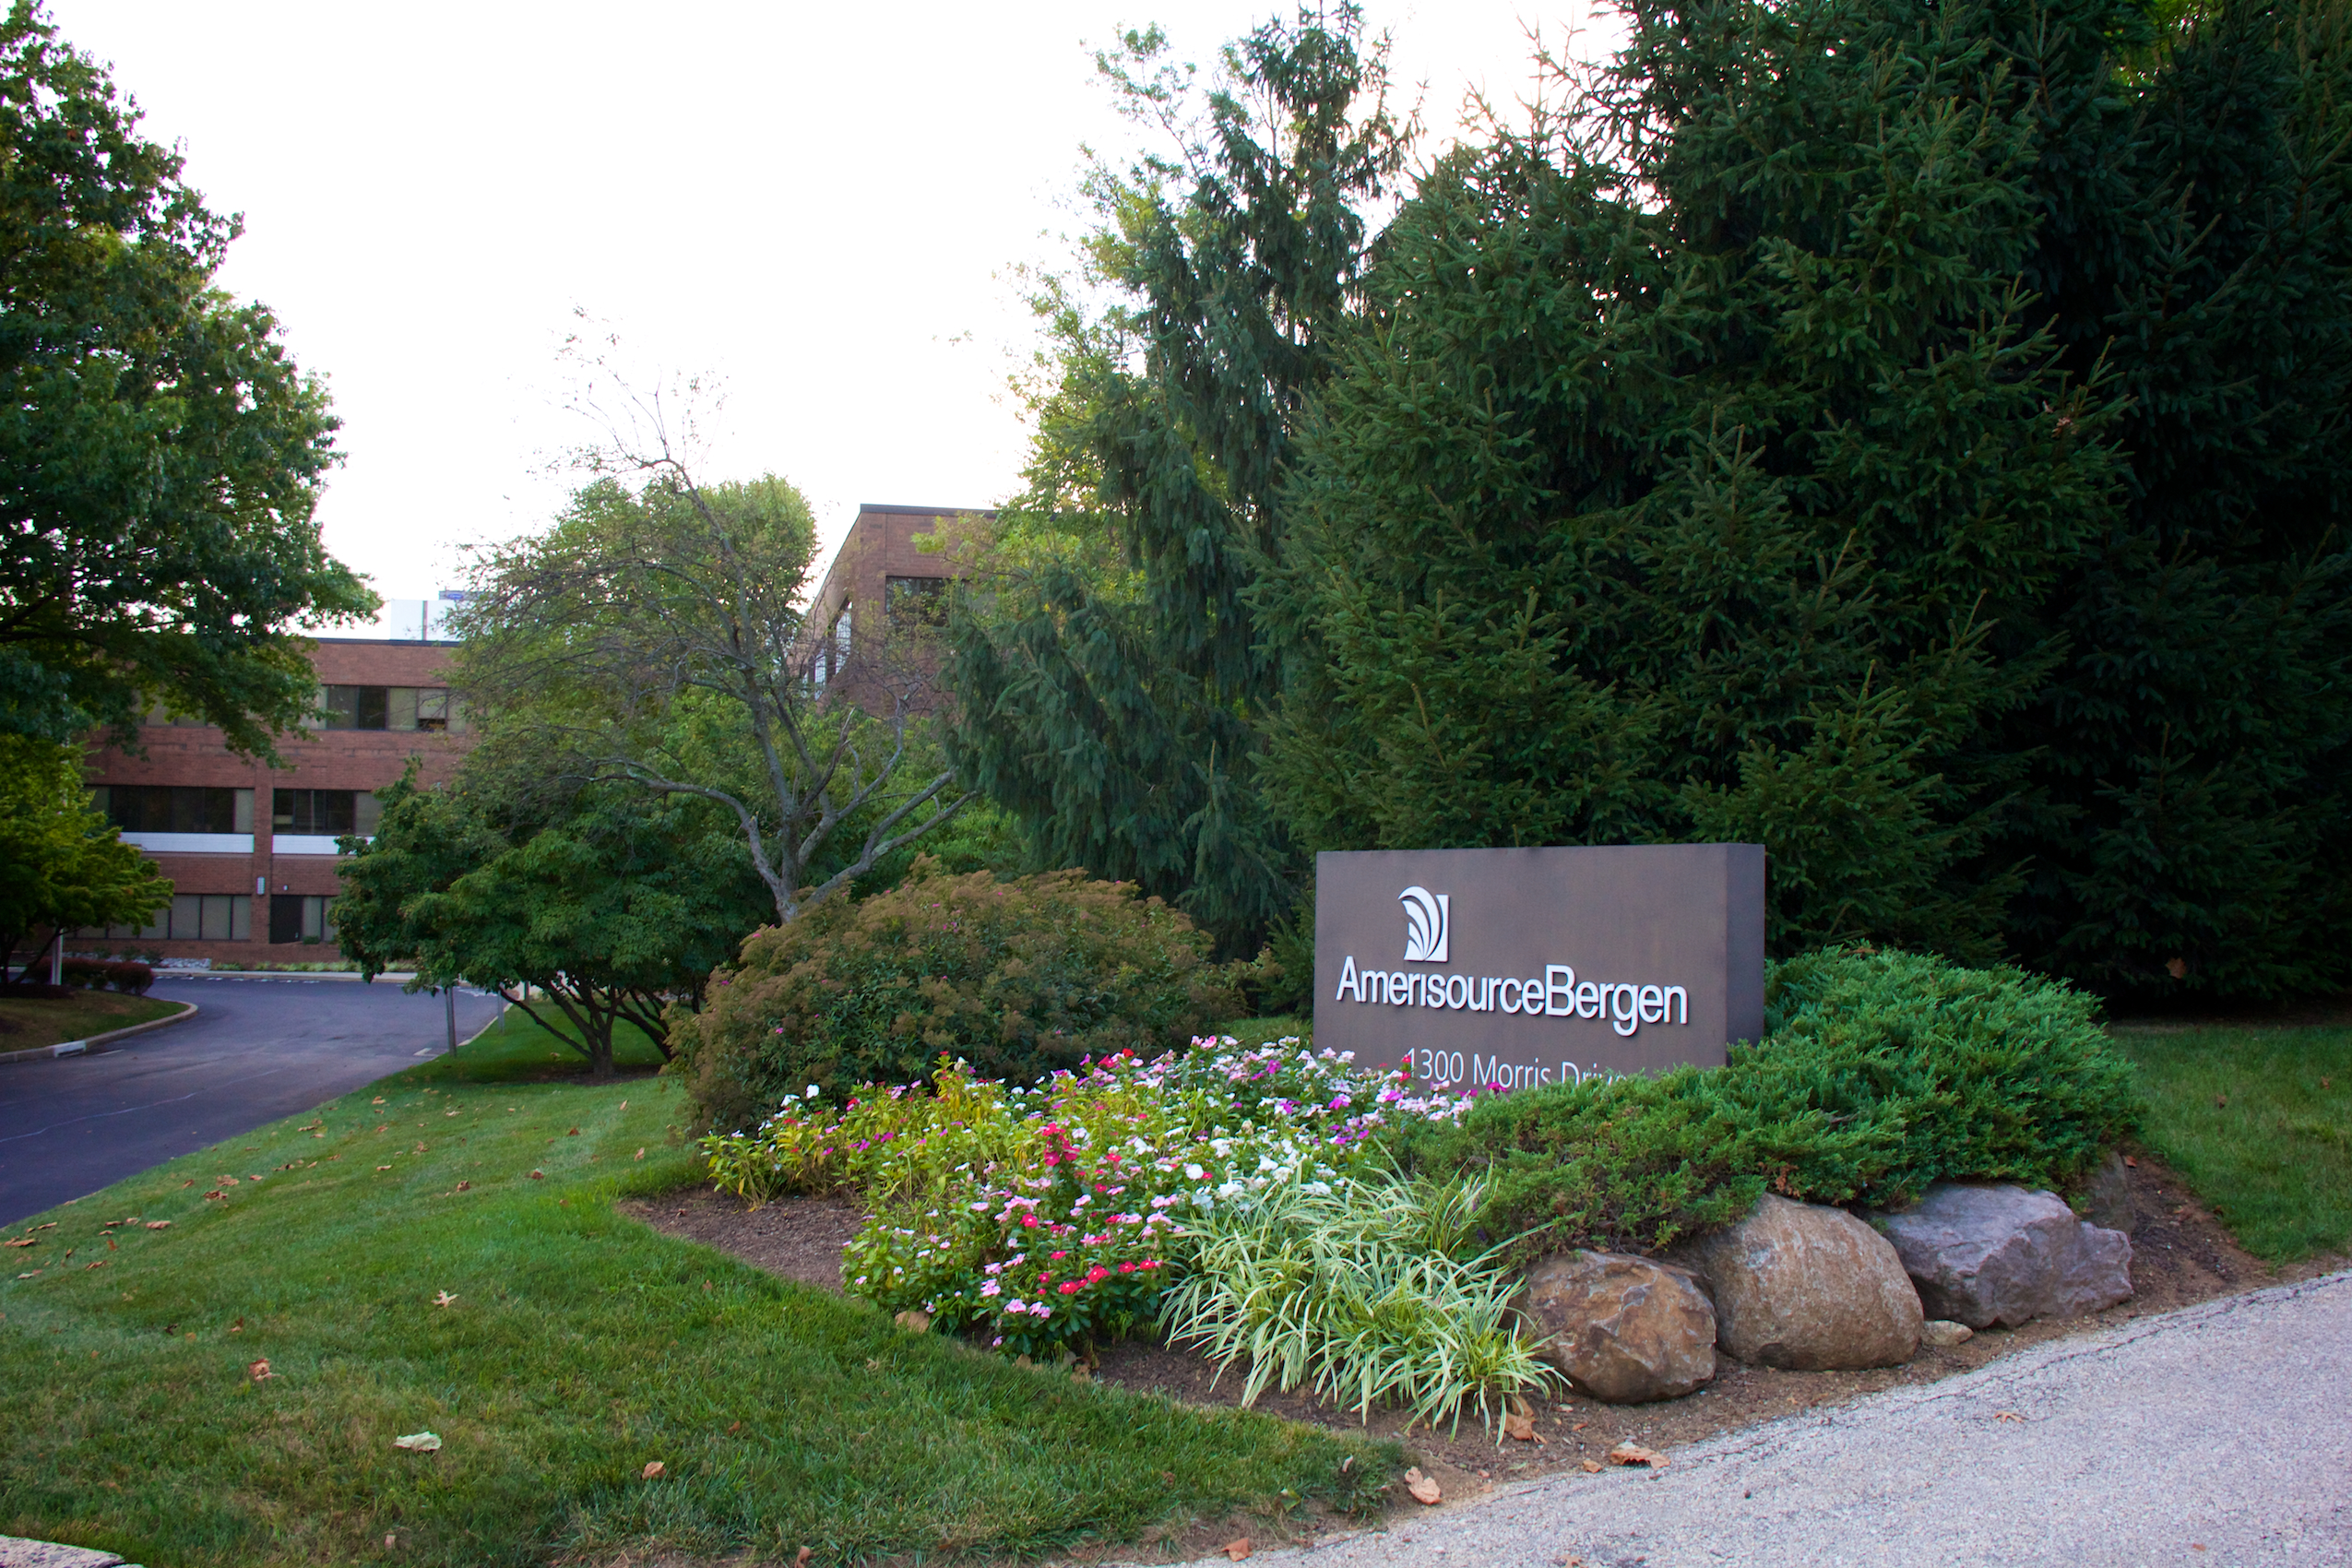 AmerisourceBergen picks new headquarters location in Conshohocken